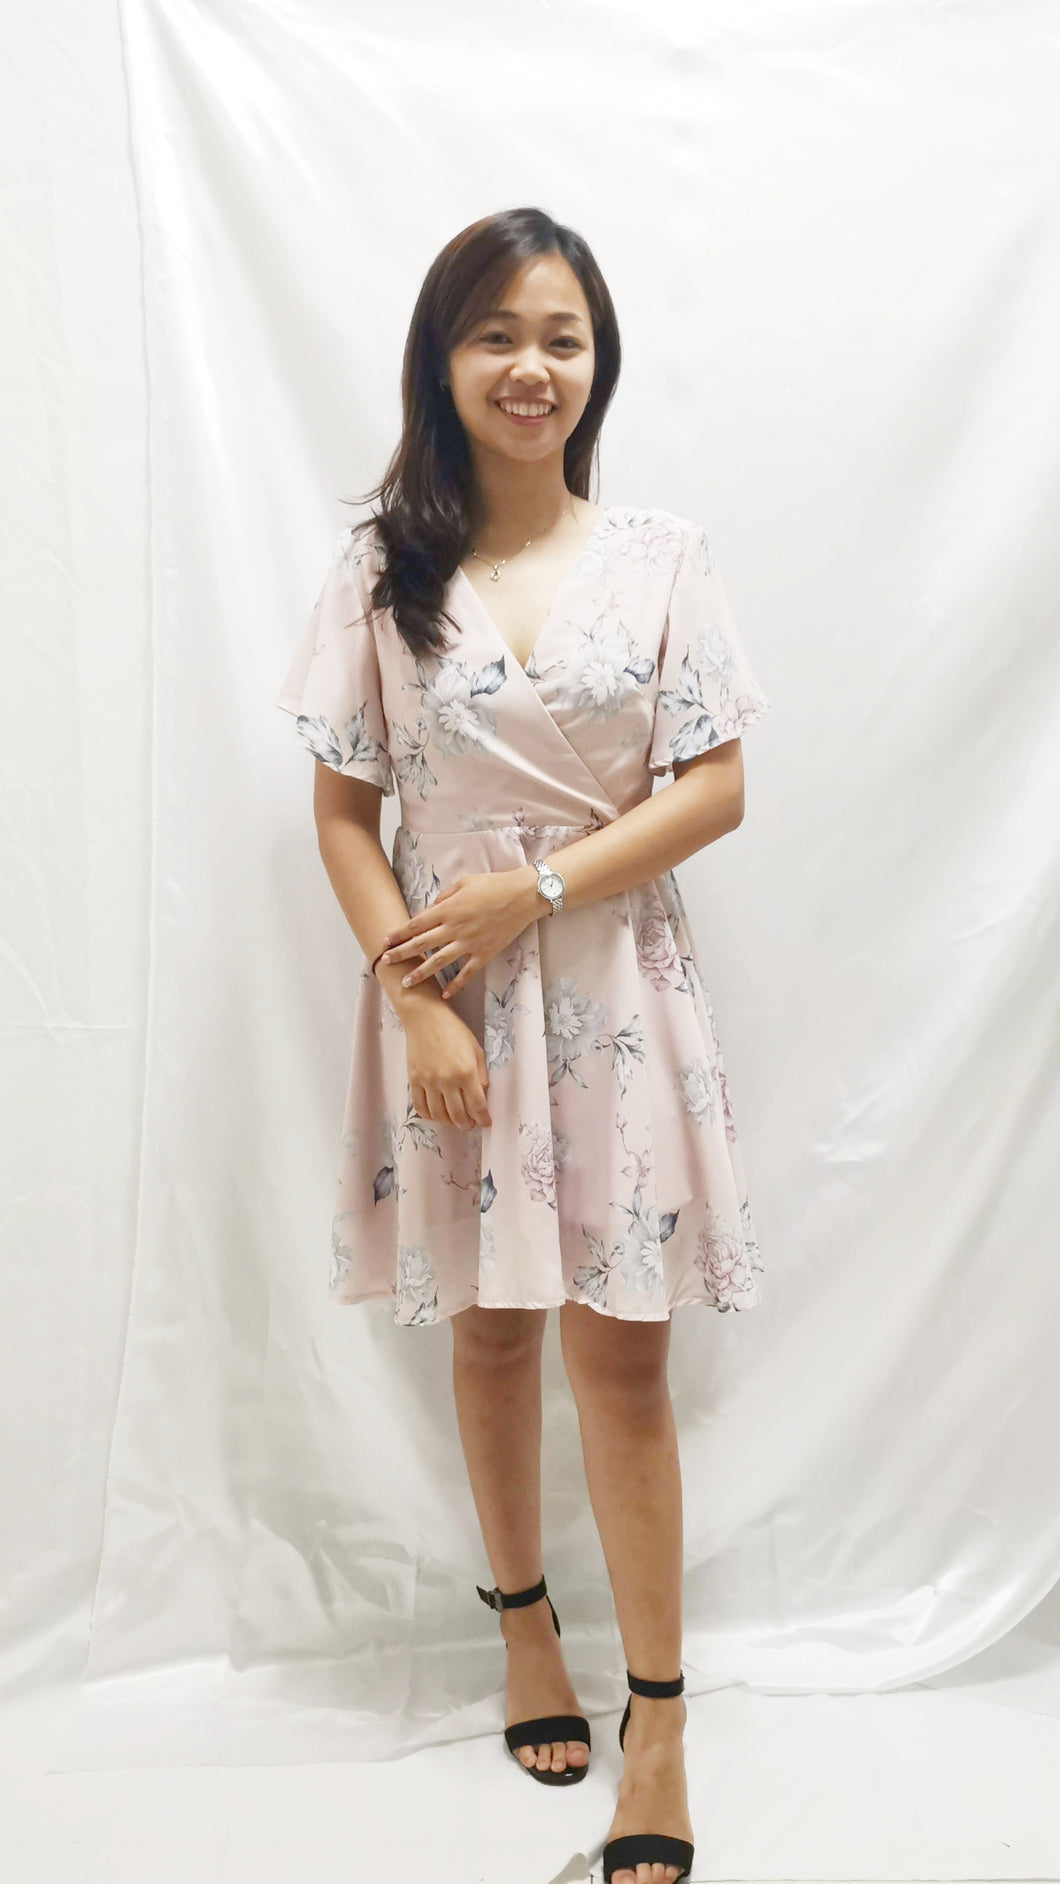 Premium - Waverly Floral Dress in Pink - BellissimoLabel